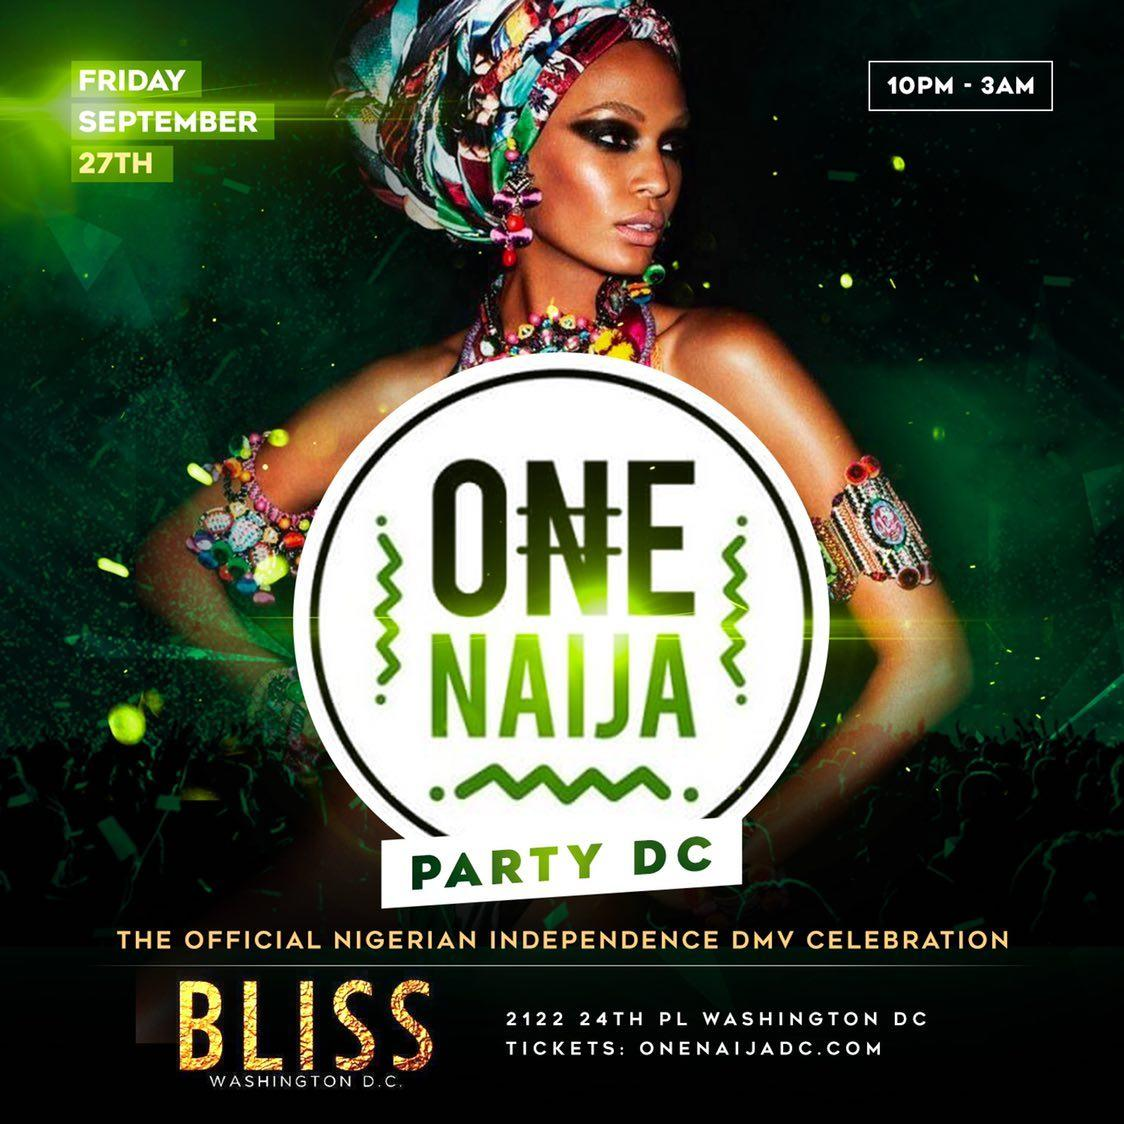 The Biggest Afrobeat Event in DC - The Nigerian Independence